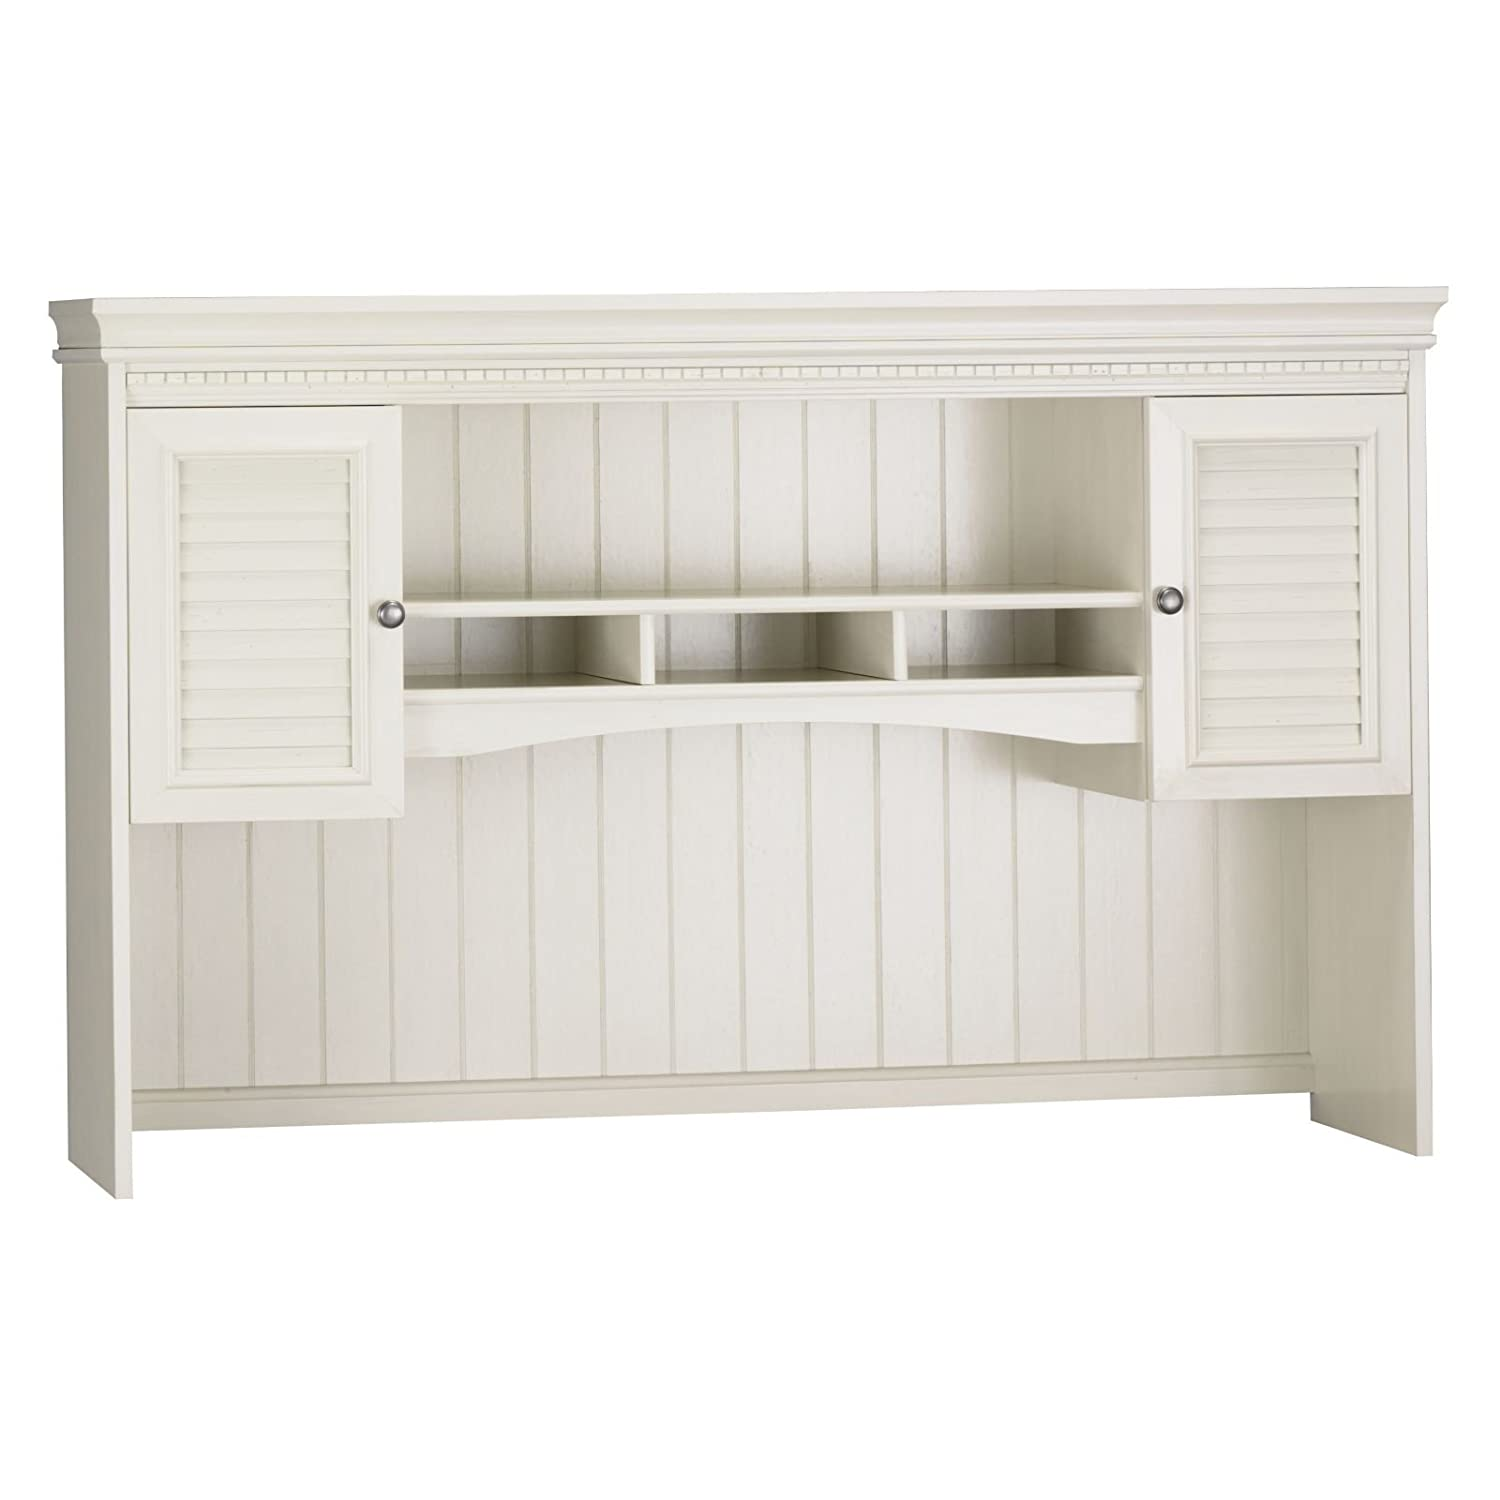 Amazon.com: Fairview Hutch for L Shaped Desk in Antique White: Kitchen &  Dining - Amazon.com: Fairview Hutch For L Shaped Desk In Antique White